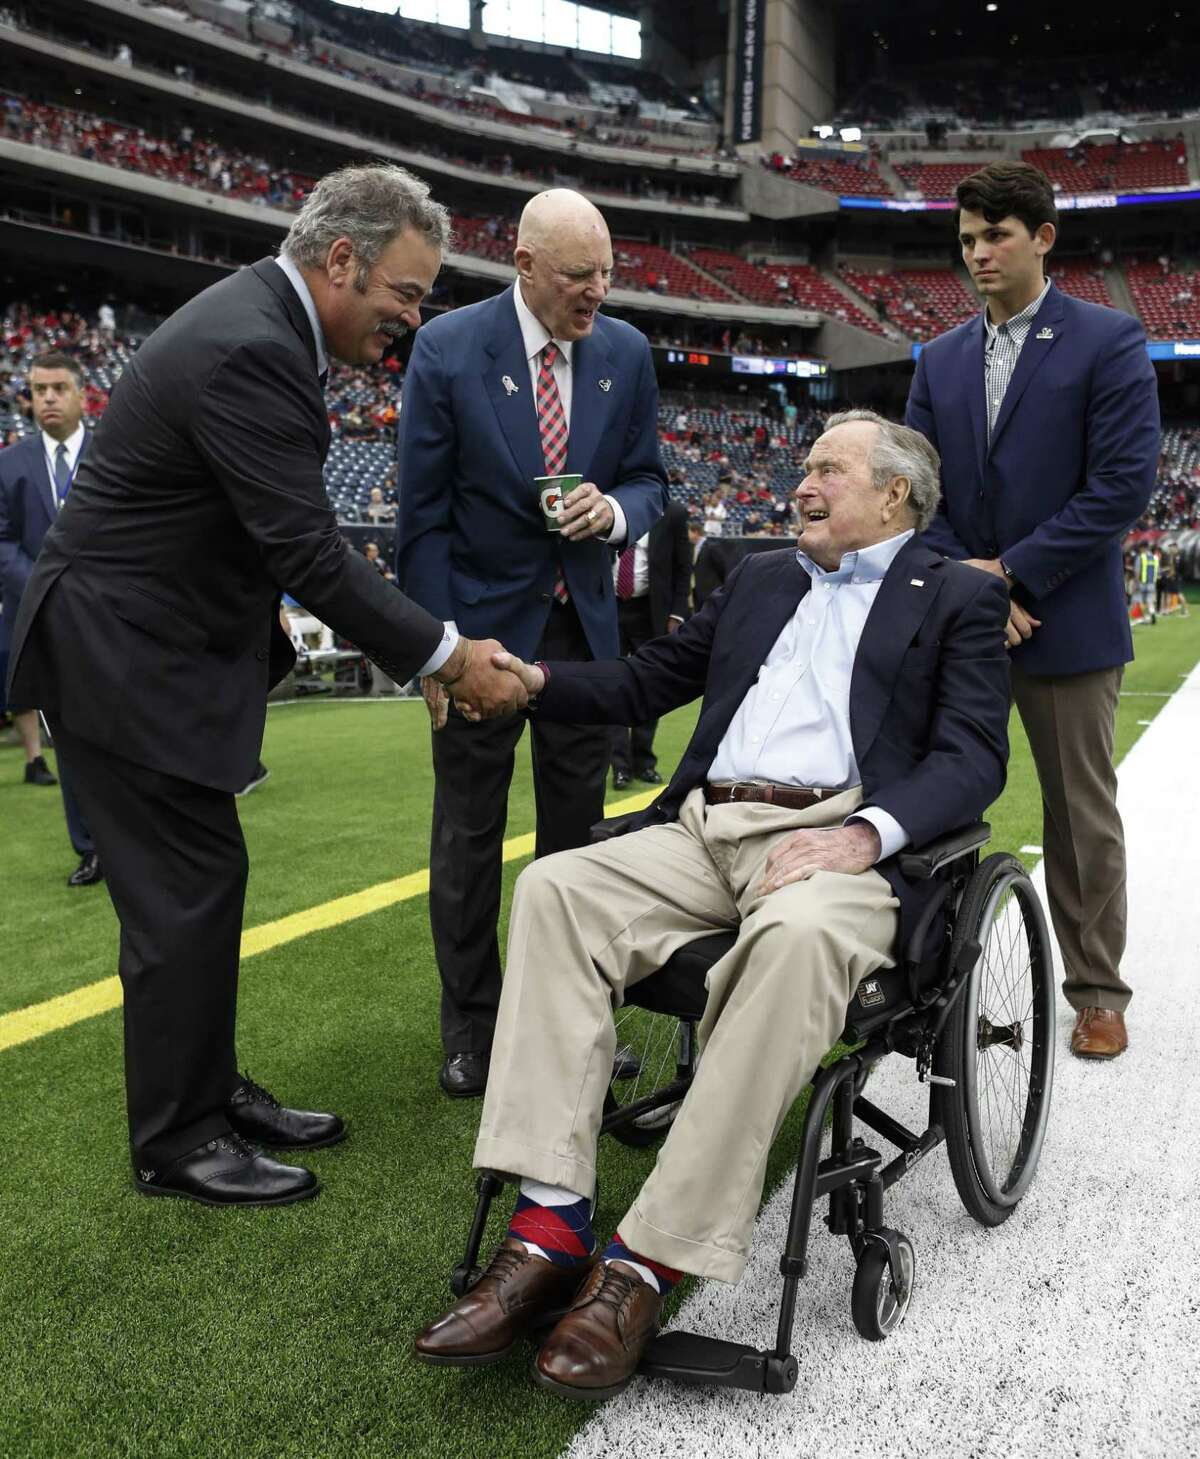 Houston Texans' COO Cal McNair, left, and owner Bob McNair greet former President George H.W. Bush before an NFL football game against the Indianapolis Colts at NRG Stadium on Nov. 5, 2017.